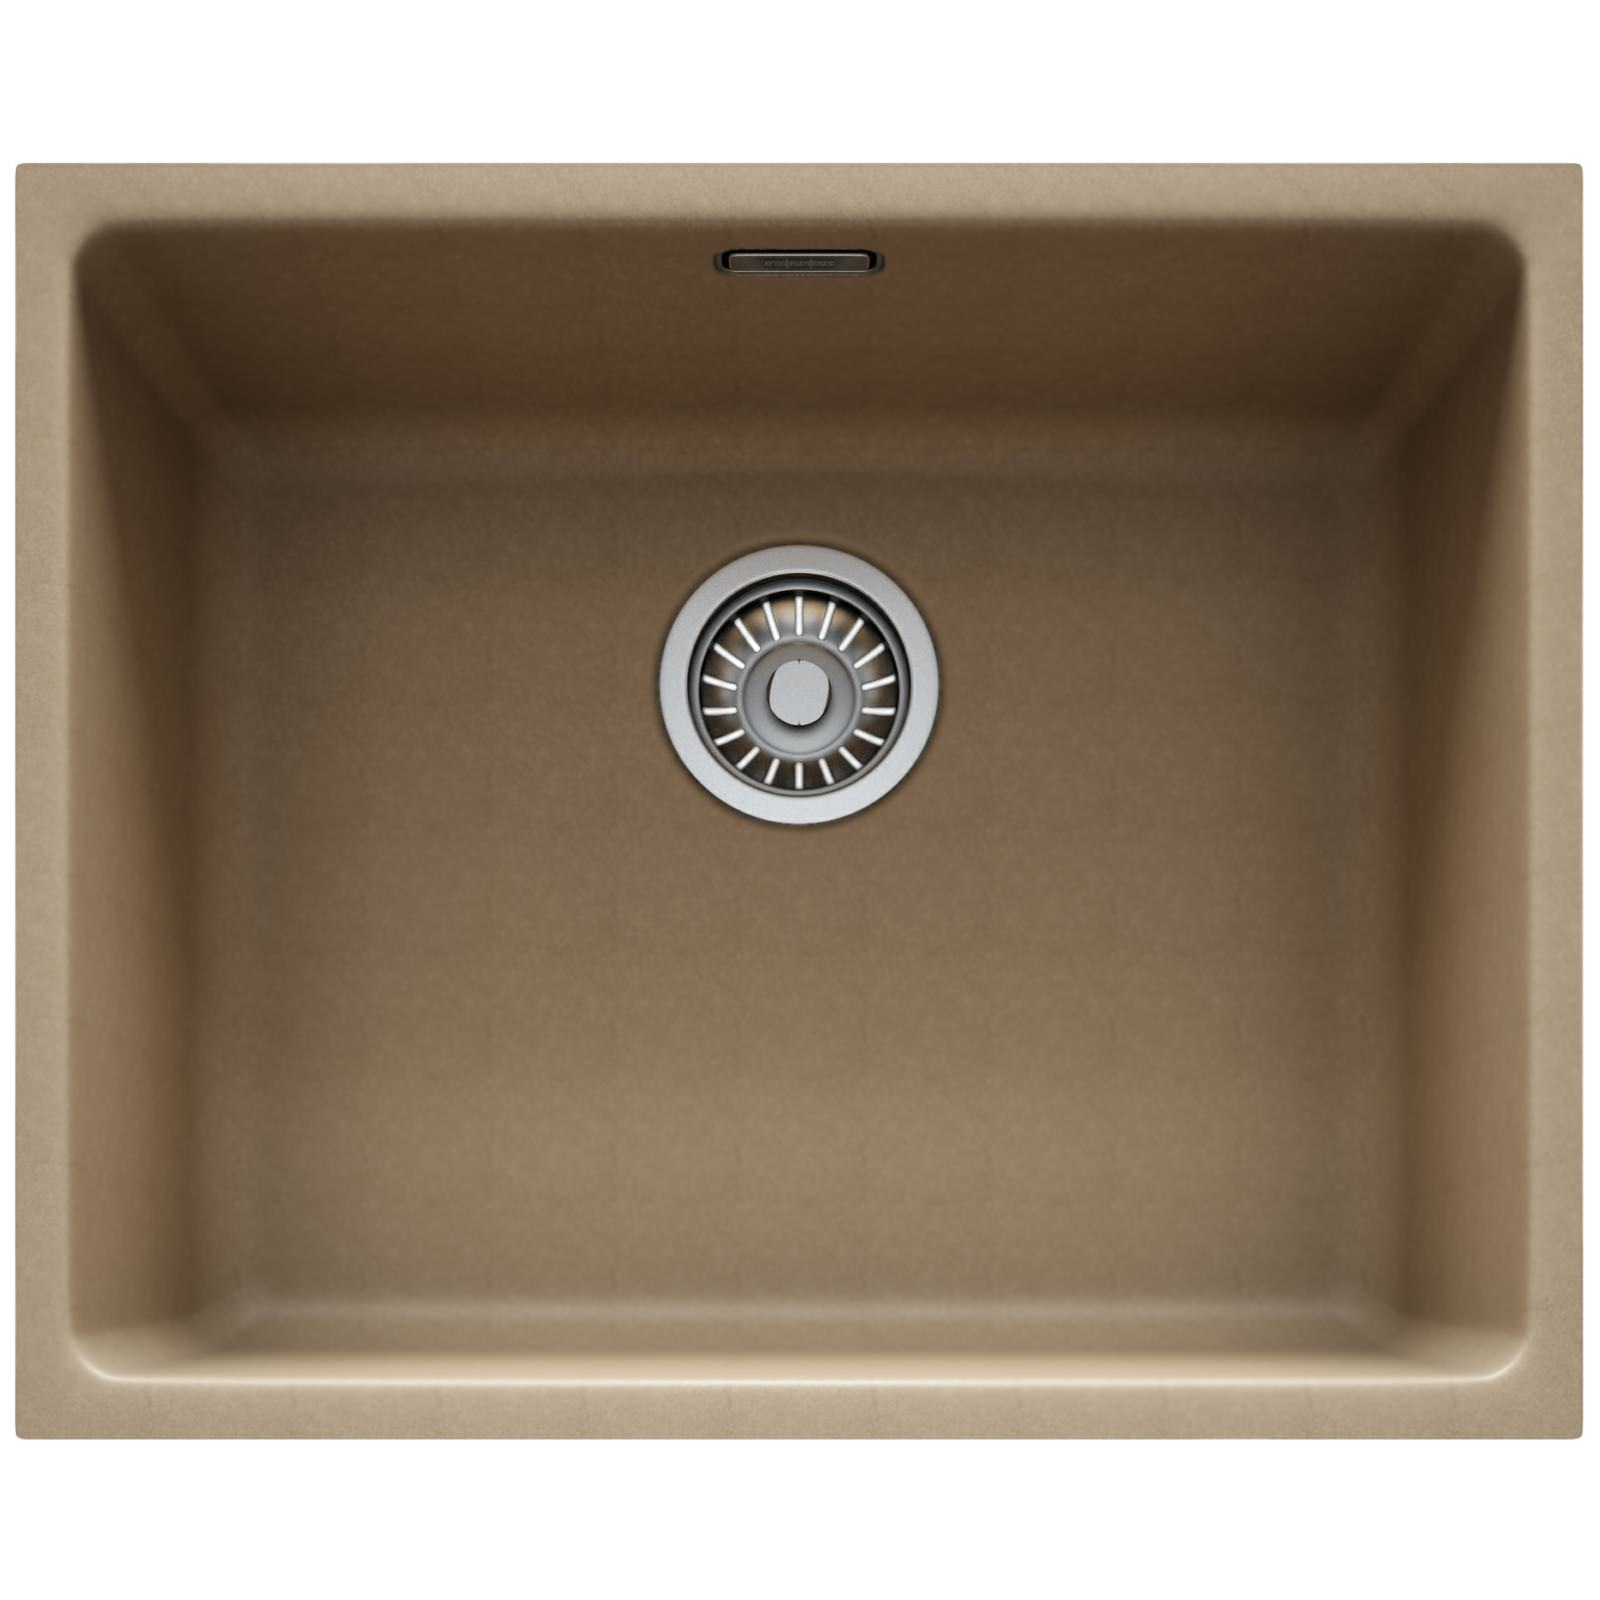 Franke Fragranite Undermount Sink : Franke Kubus KBG 110 50 Fragranite Oyster 1.0 Bowl Undermount Sink ...